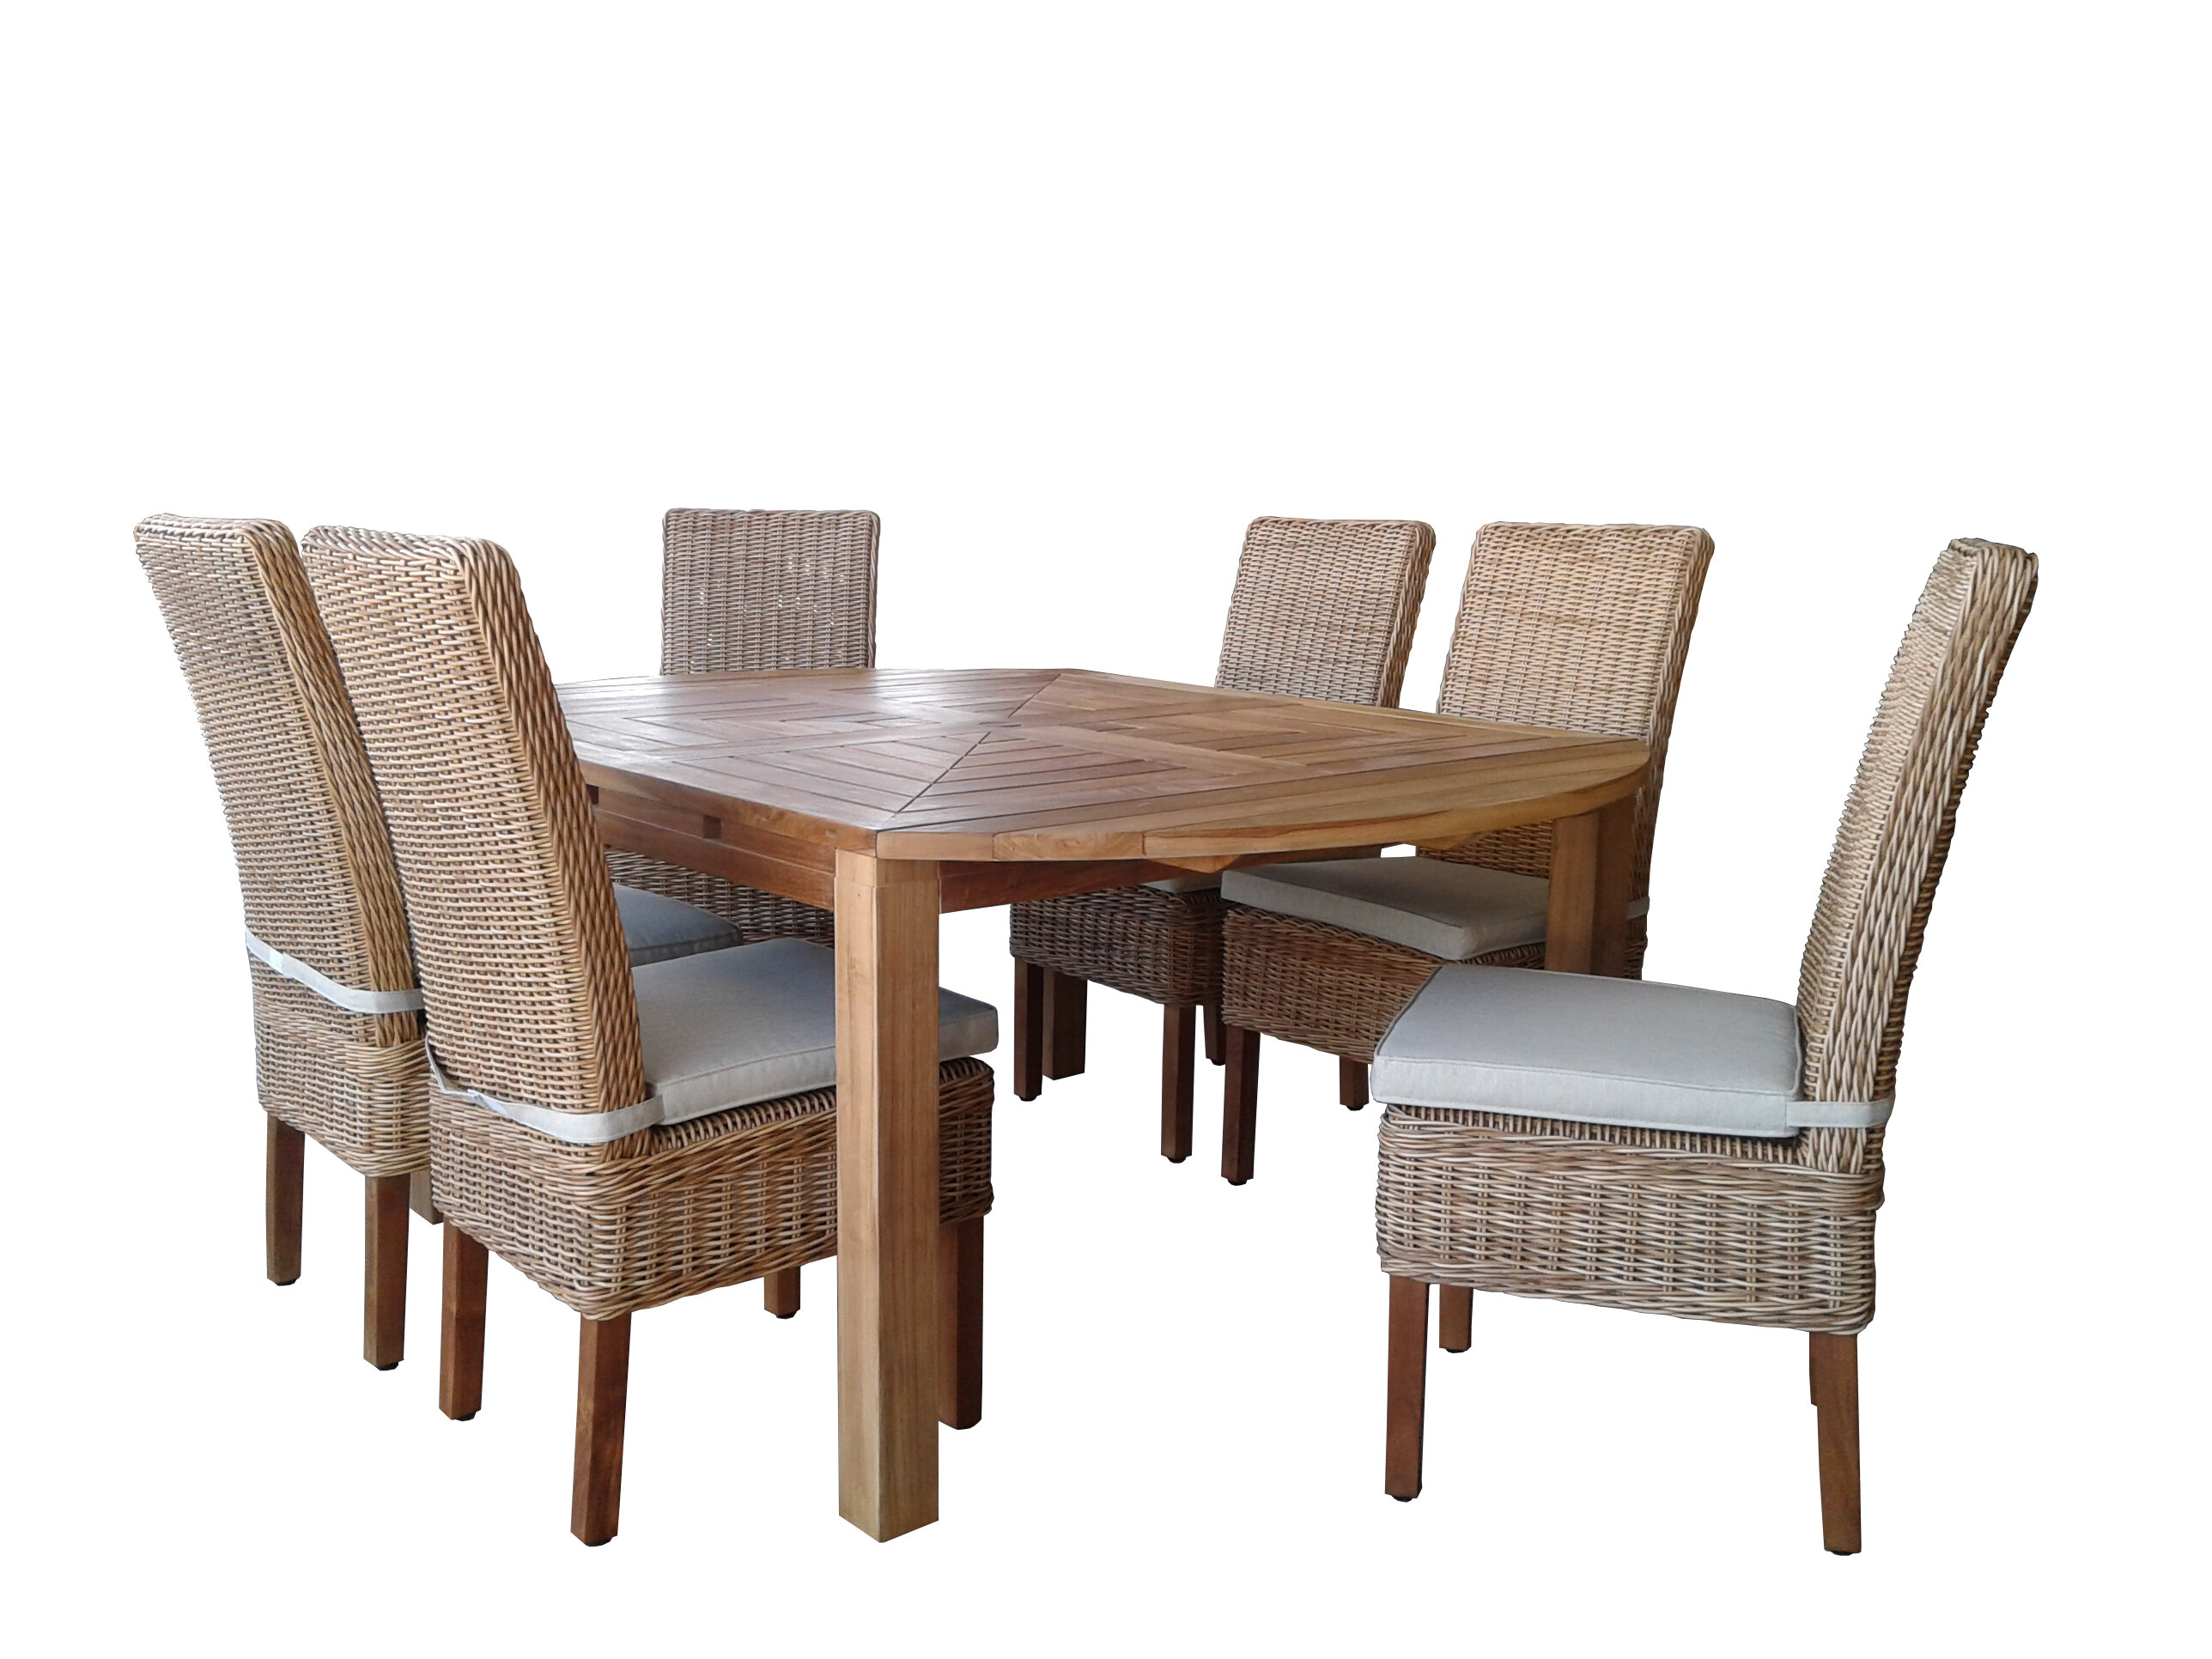 Gracie Oaks Hamish 7 Piece Teak Dining Set With Cushions Wayfair